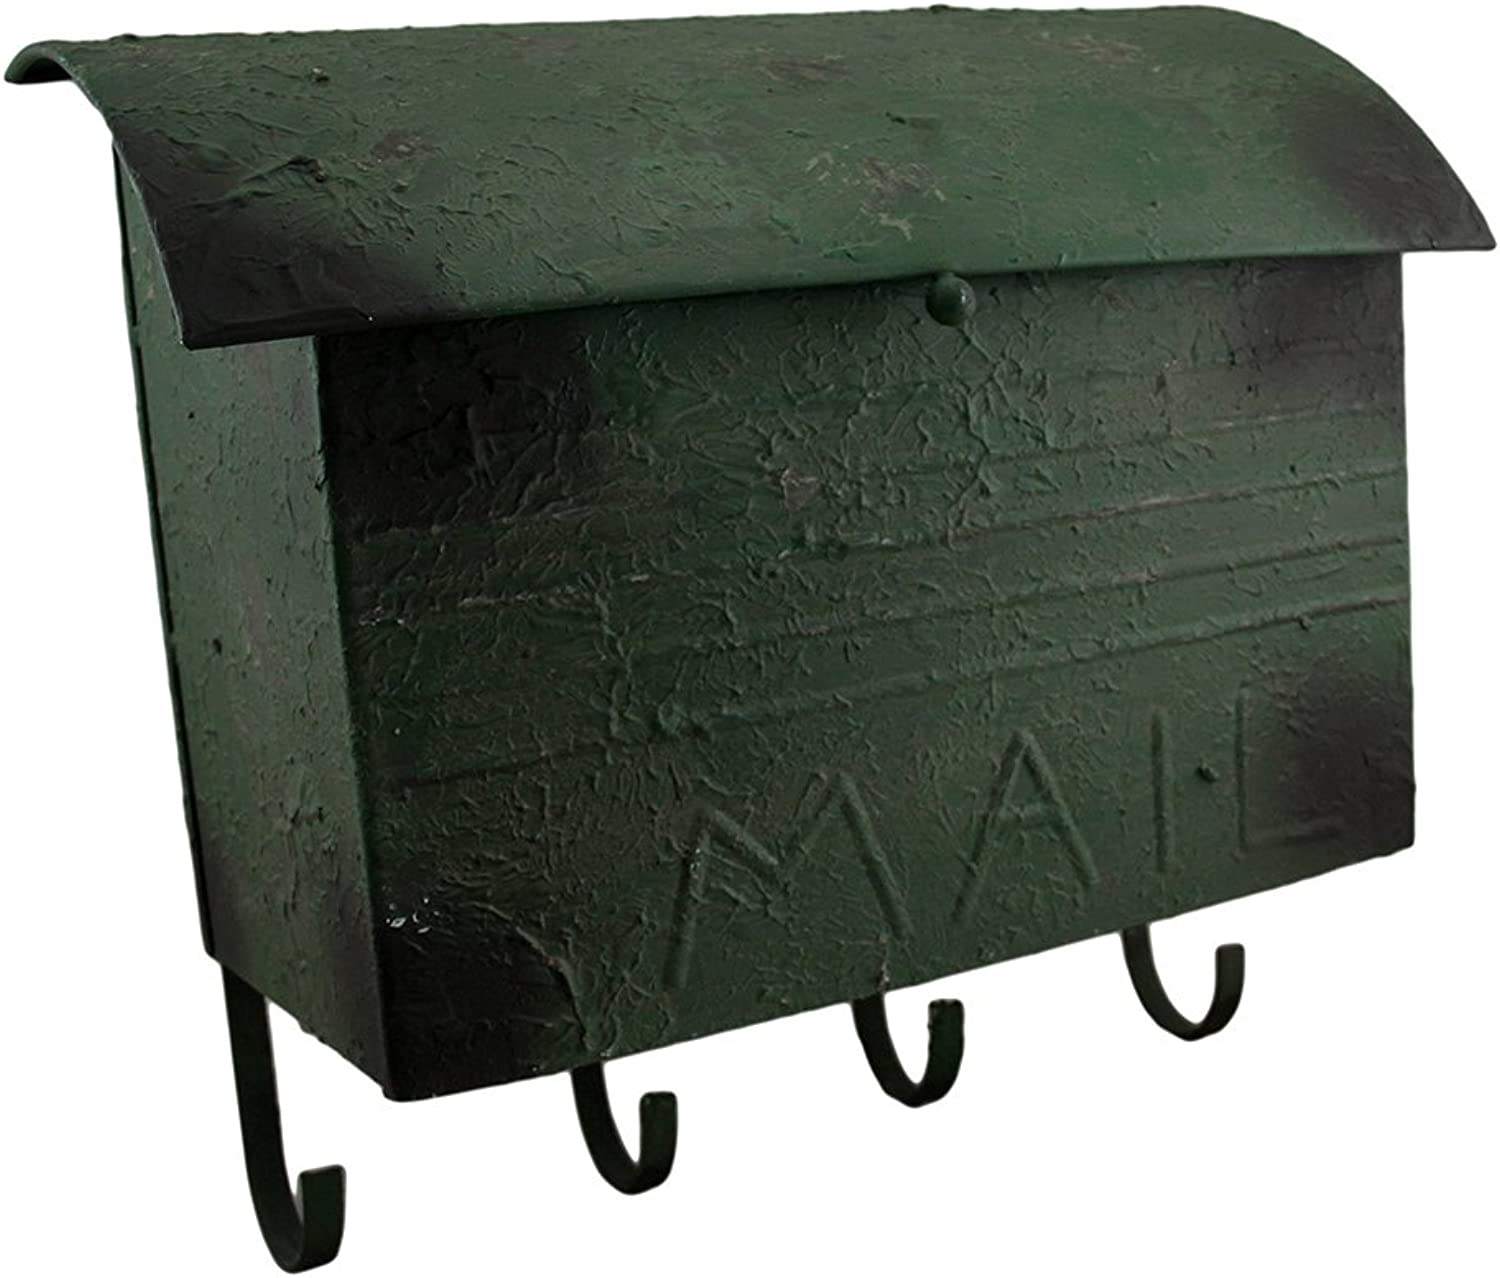 Rustic Green Vintage Style Metal Mailbox Decorative Wall Hook Hanging 16 Inch